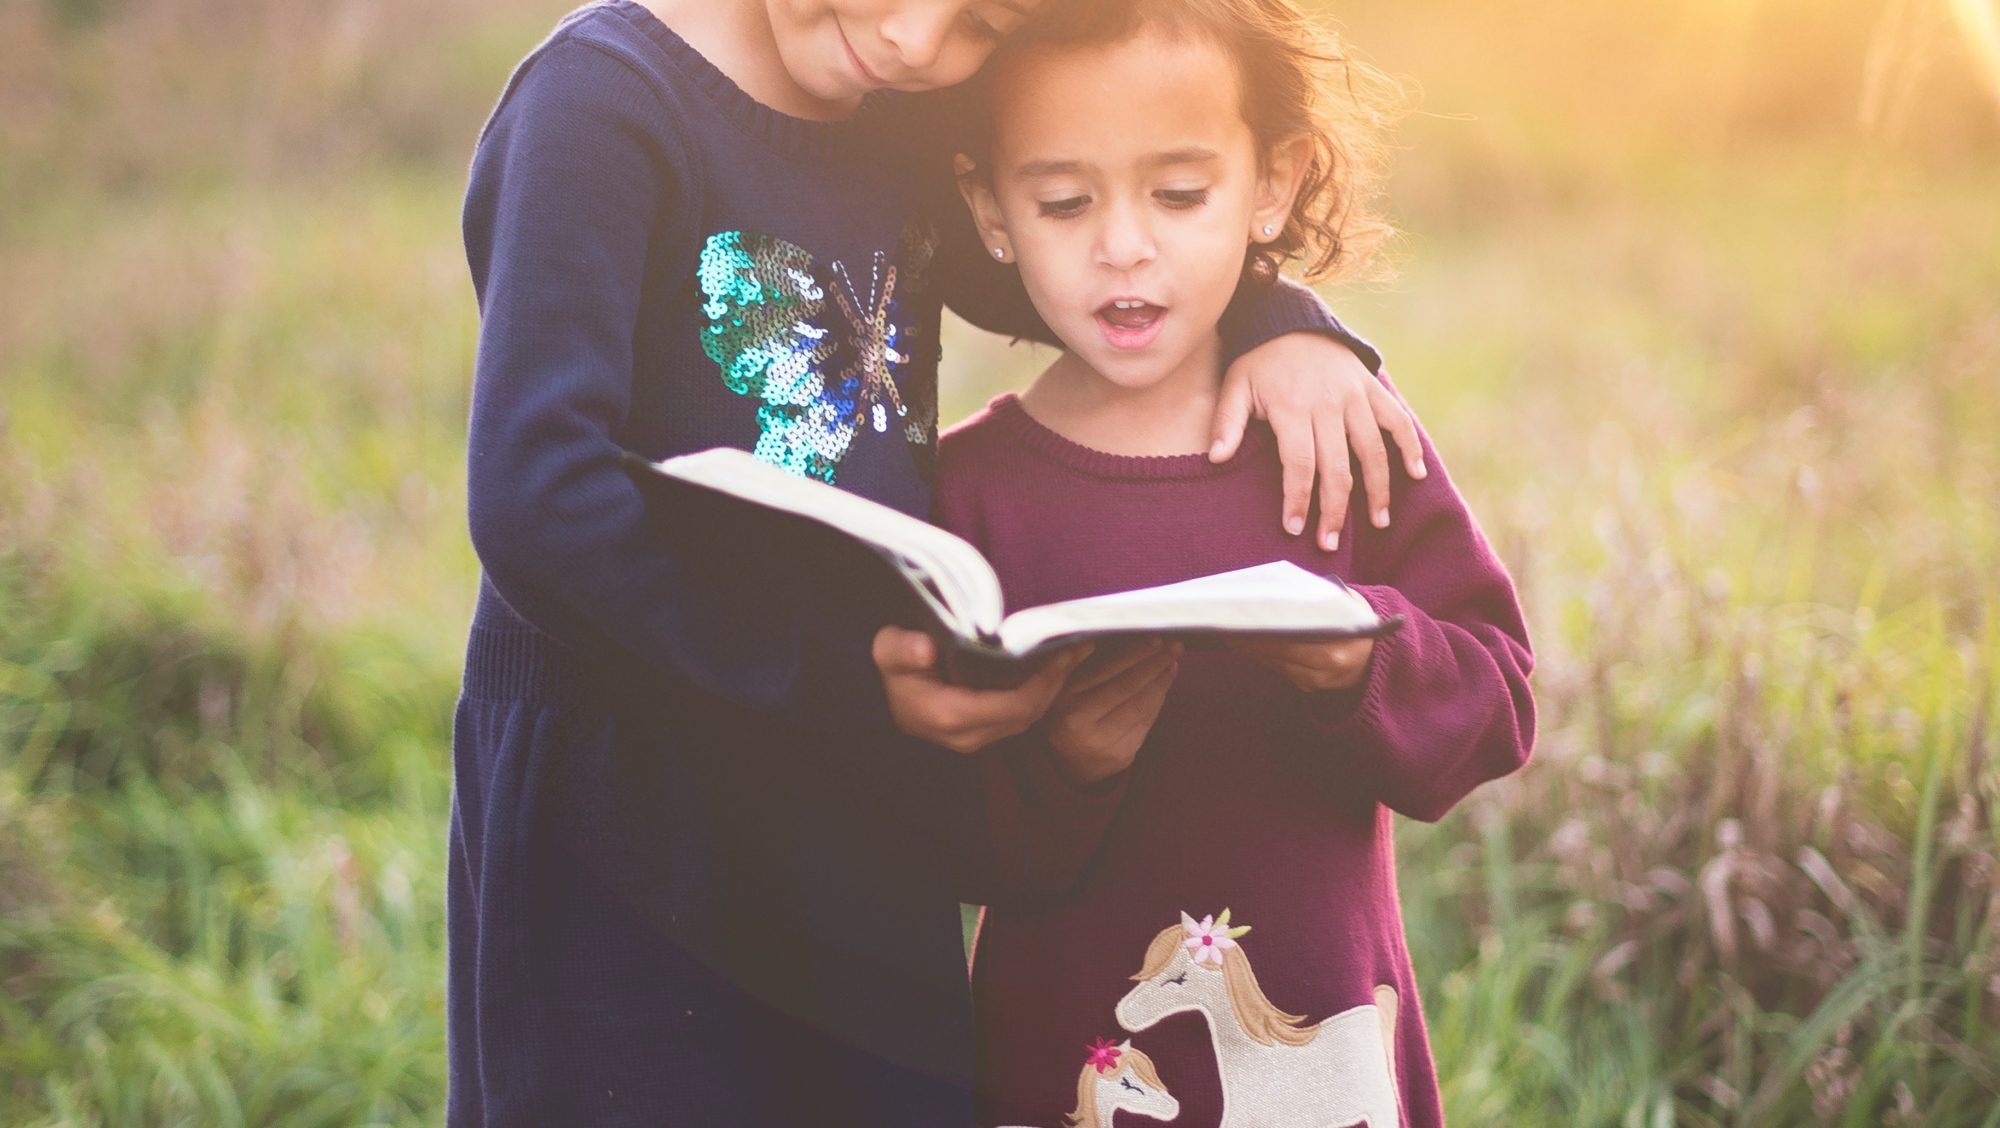 Two girls read scripture from the Bible in a field